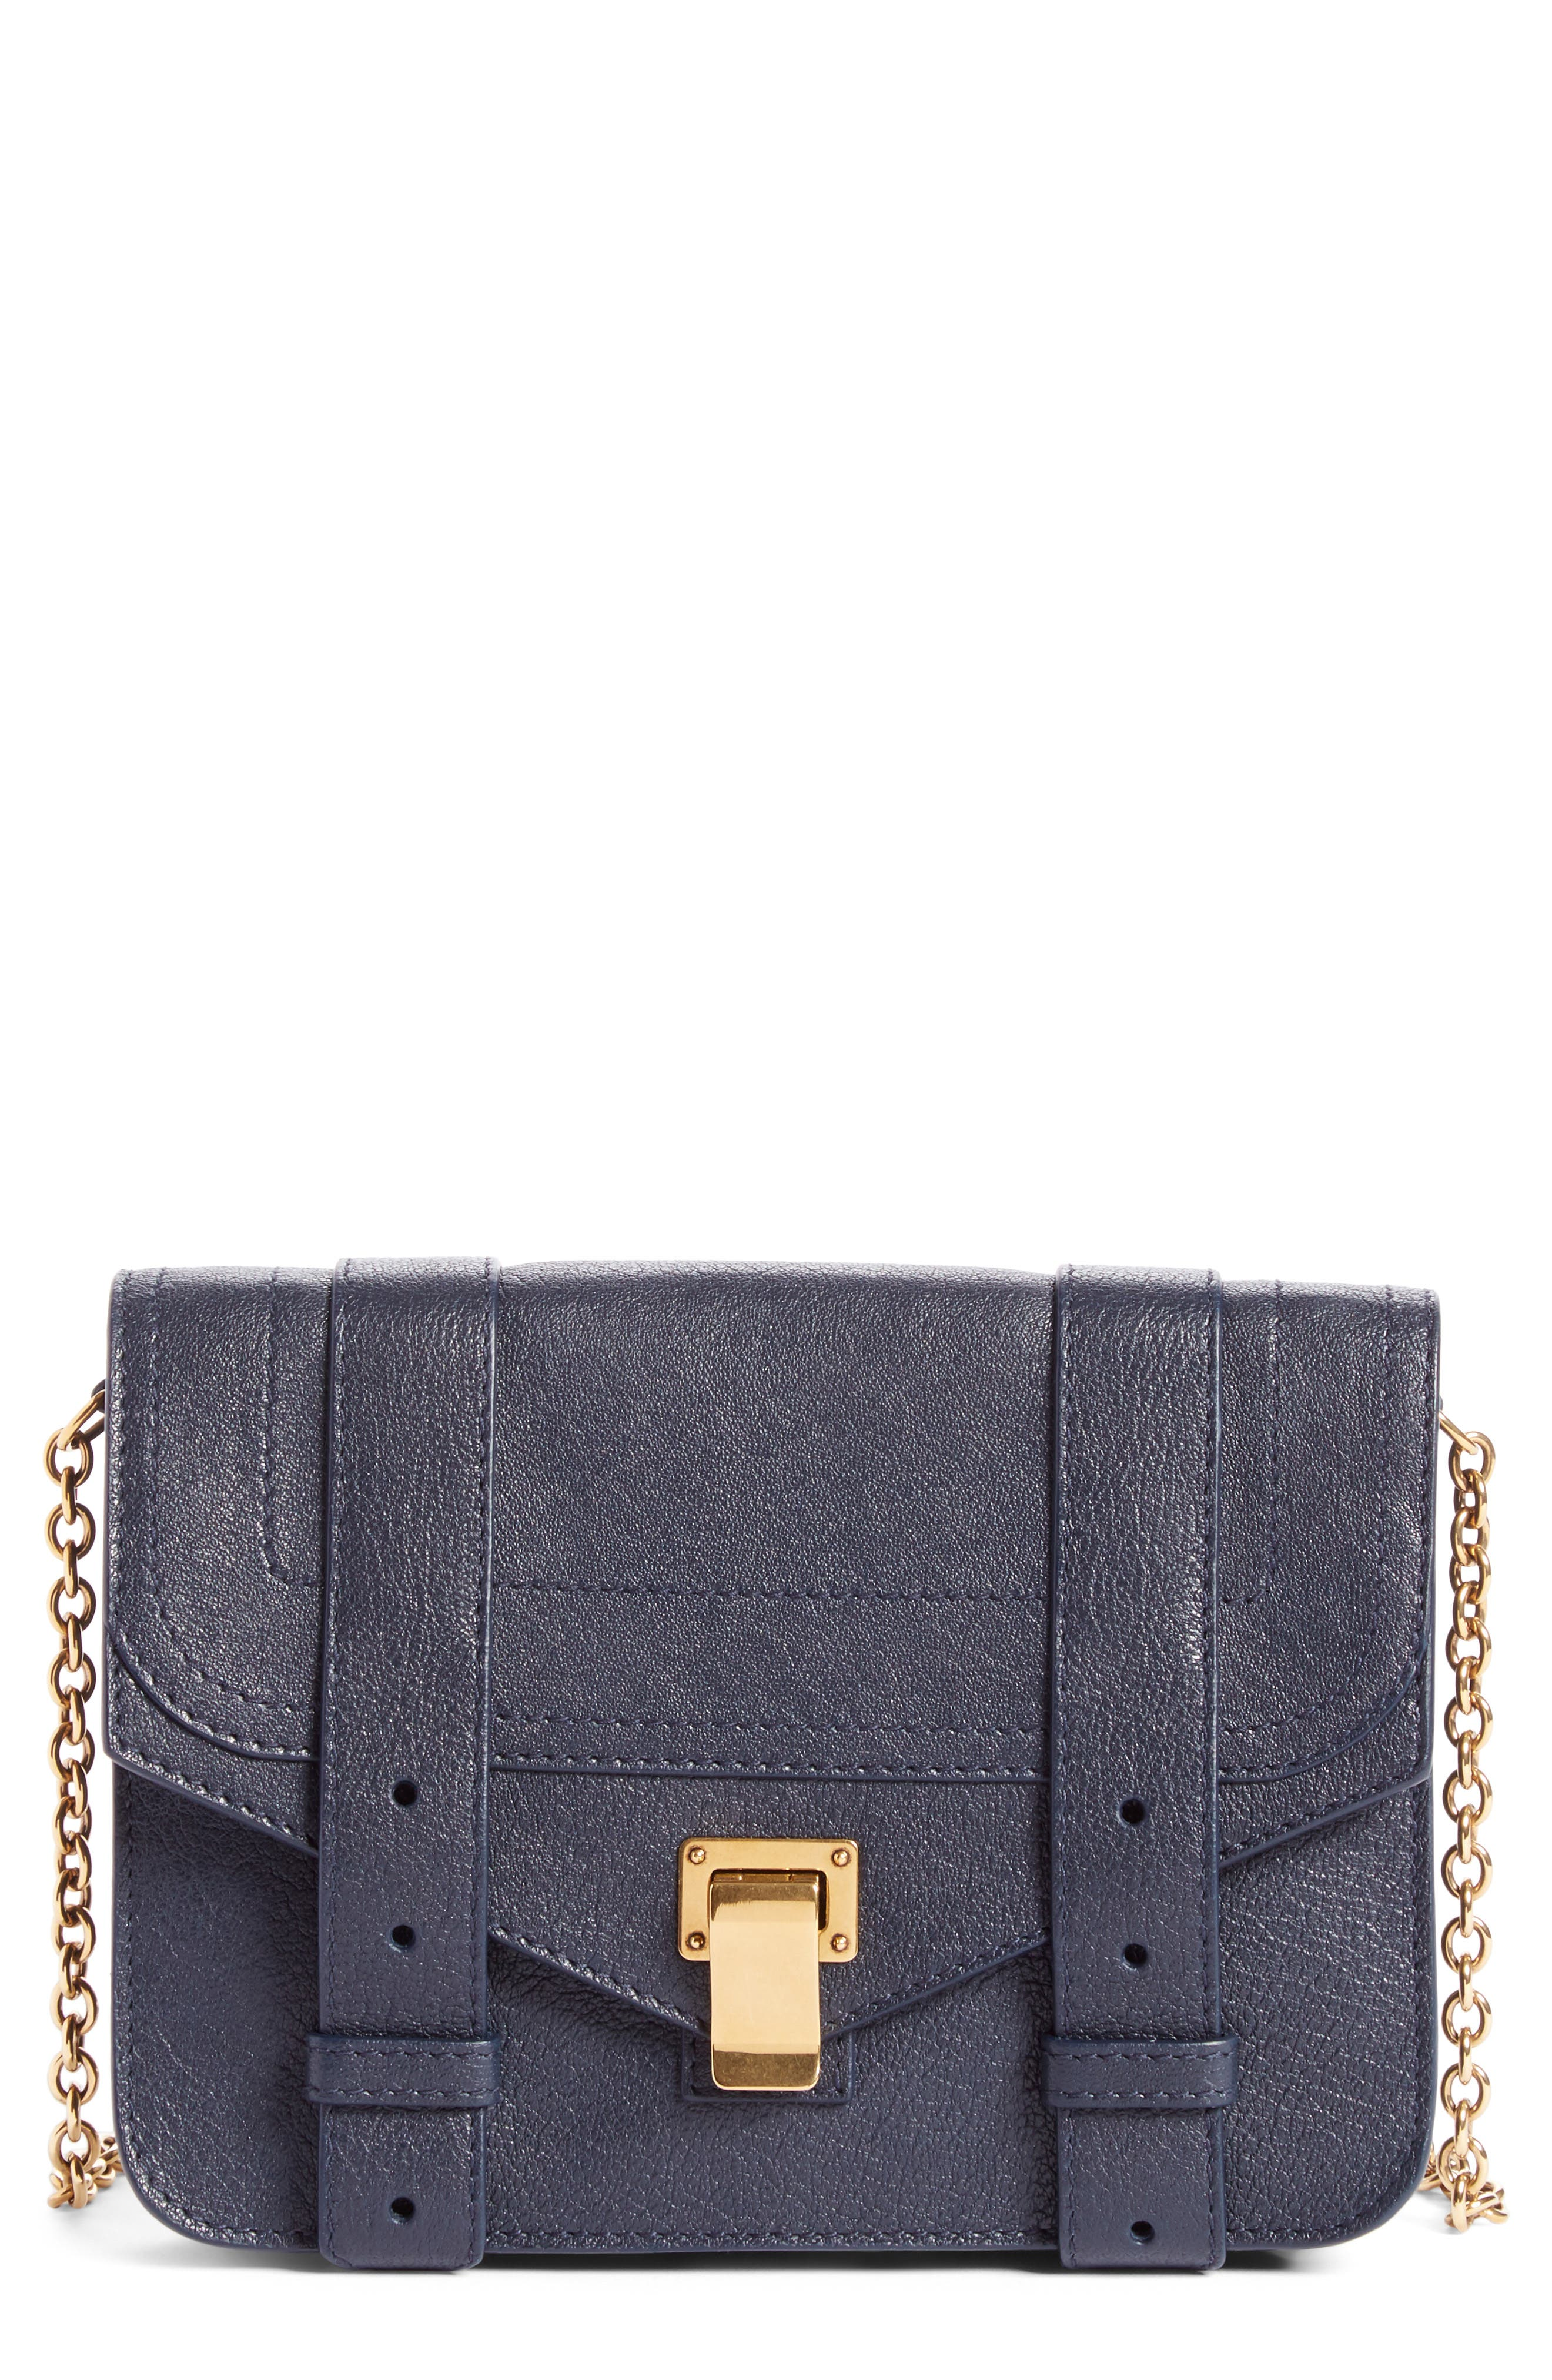 PS1 Lambskin Leather Chain Wallet,                         Main,                         color,